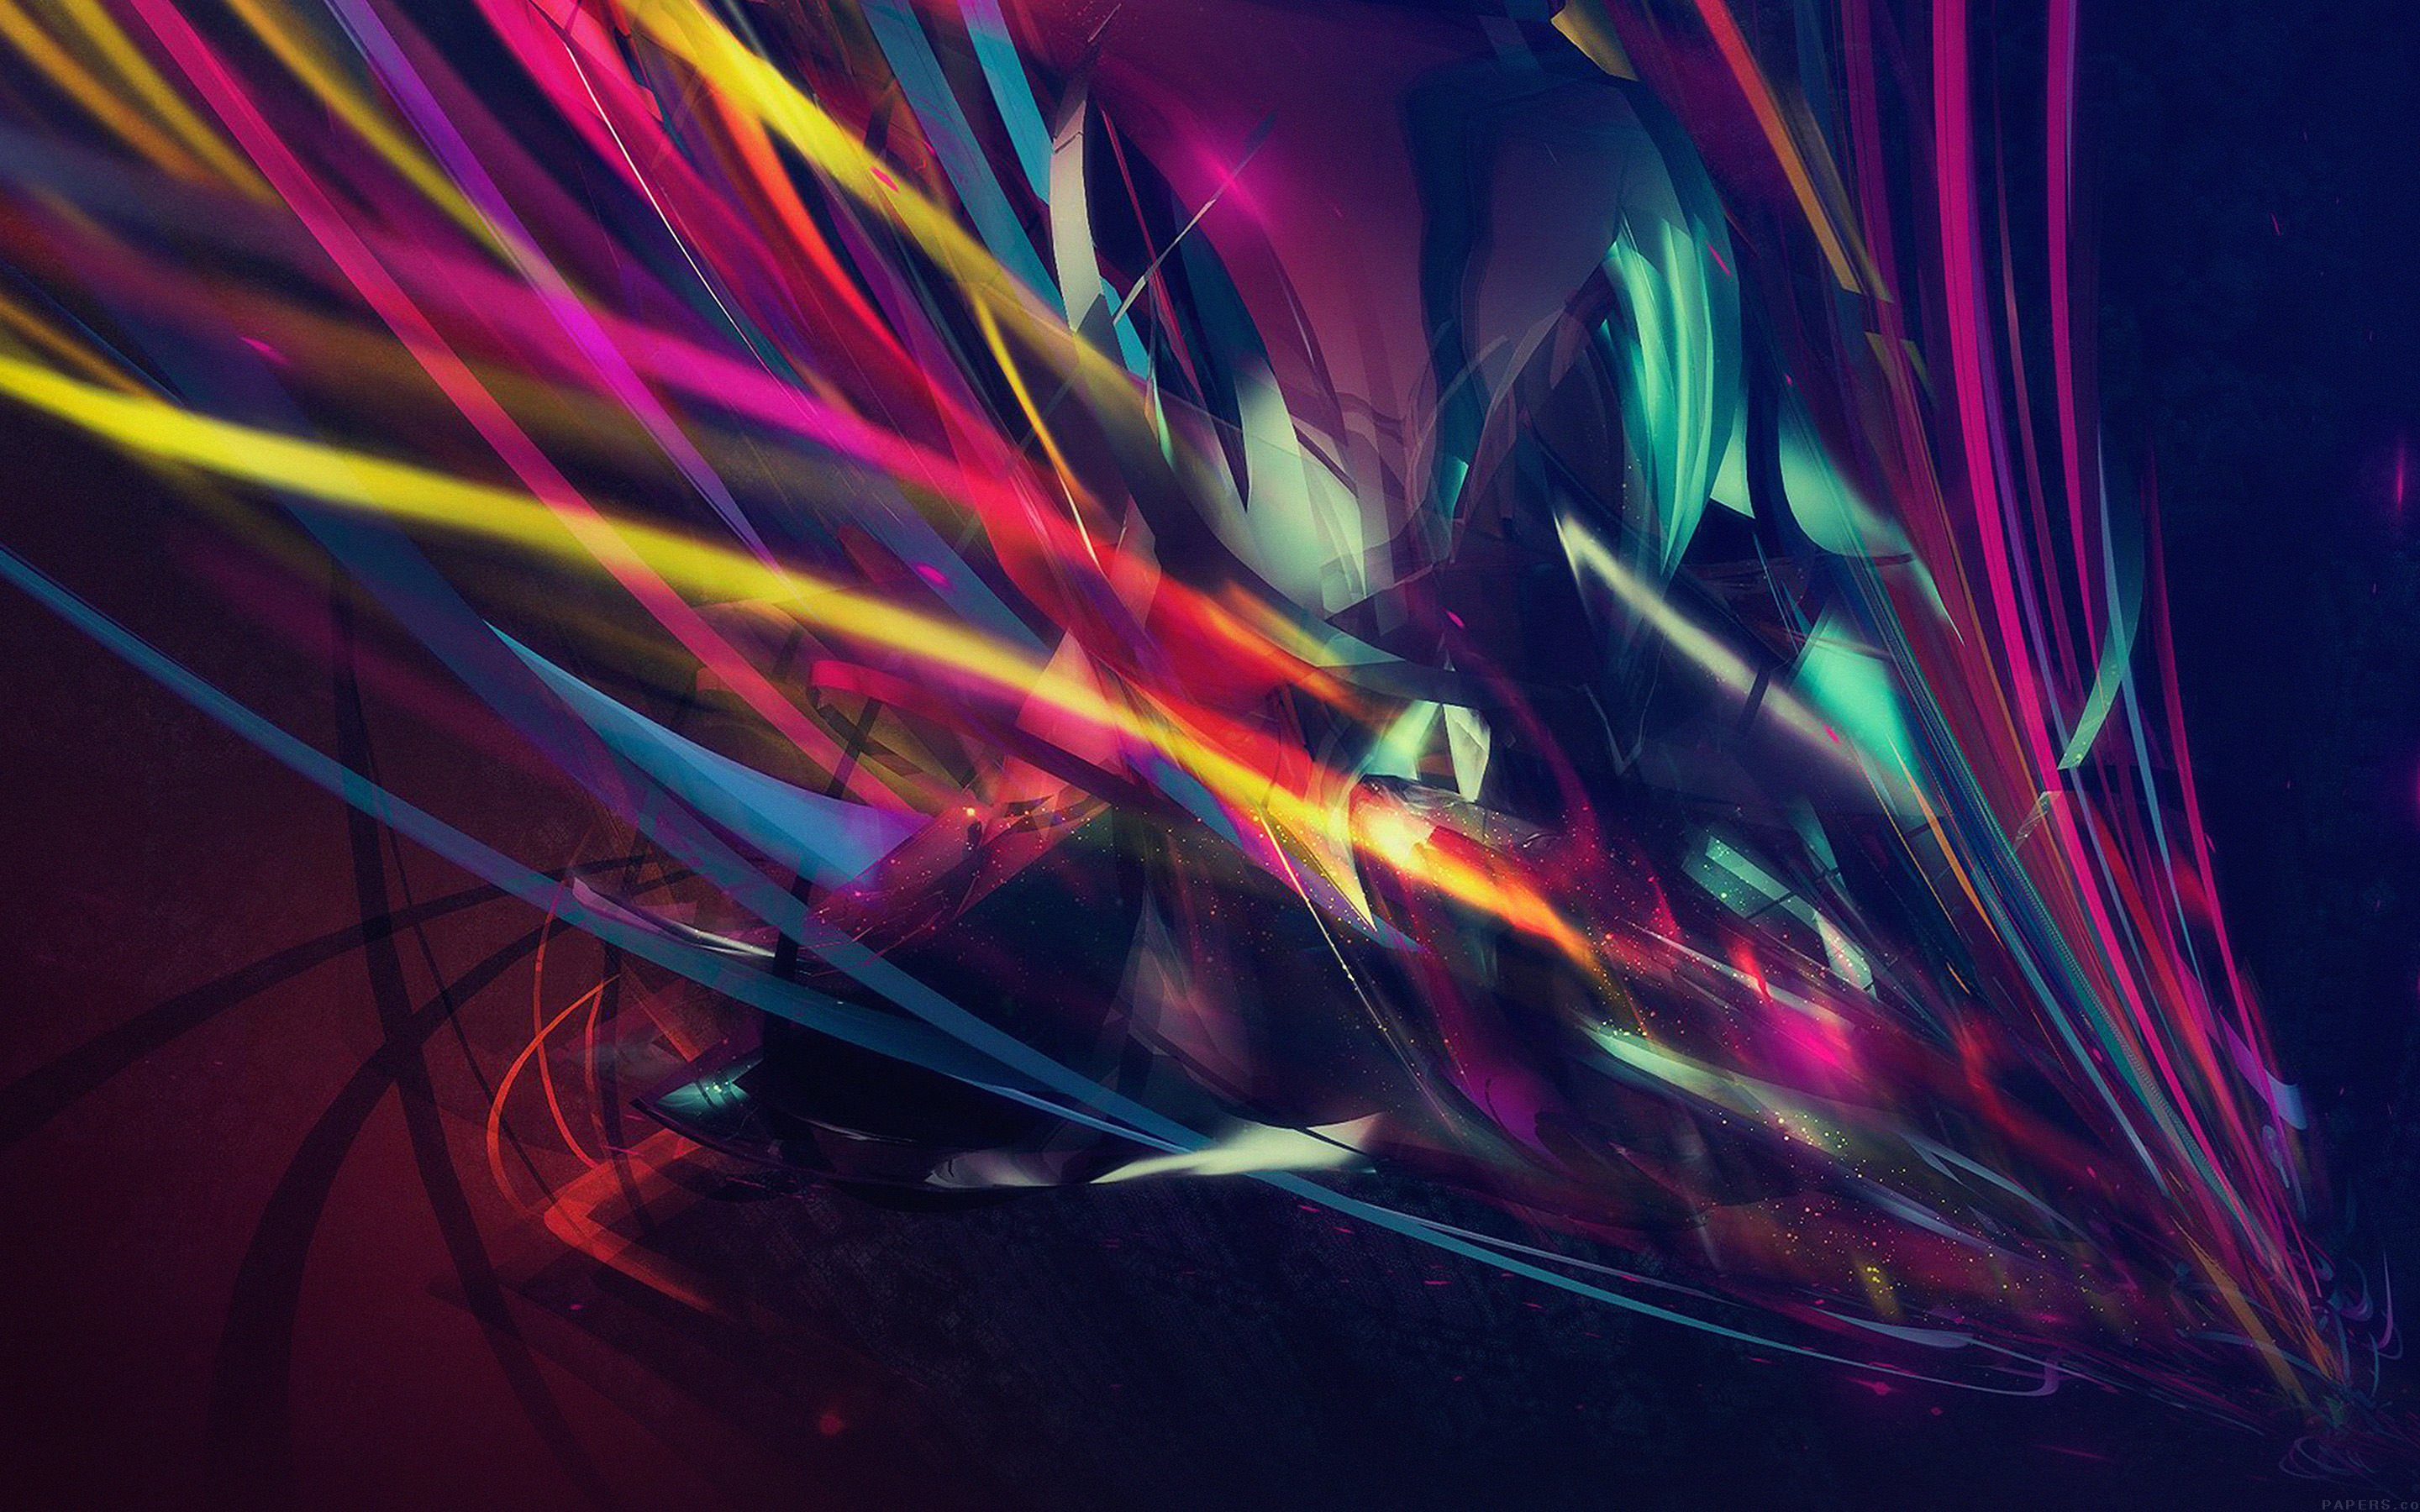 Abstract Multi Color Lines Wallpaper for Desktop 2880x1800